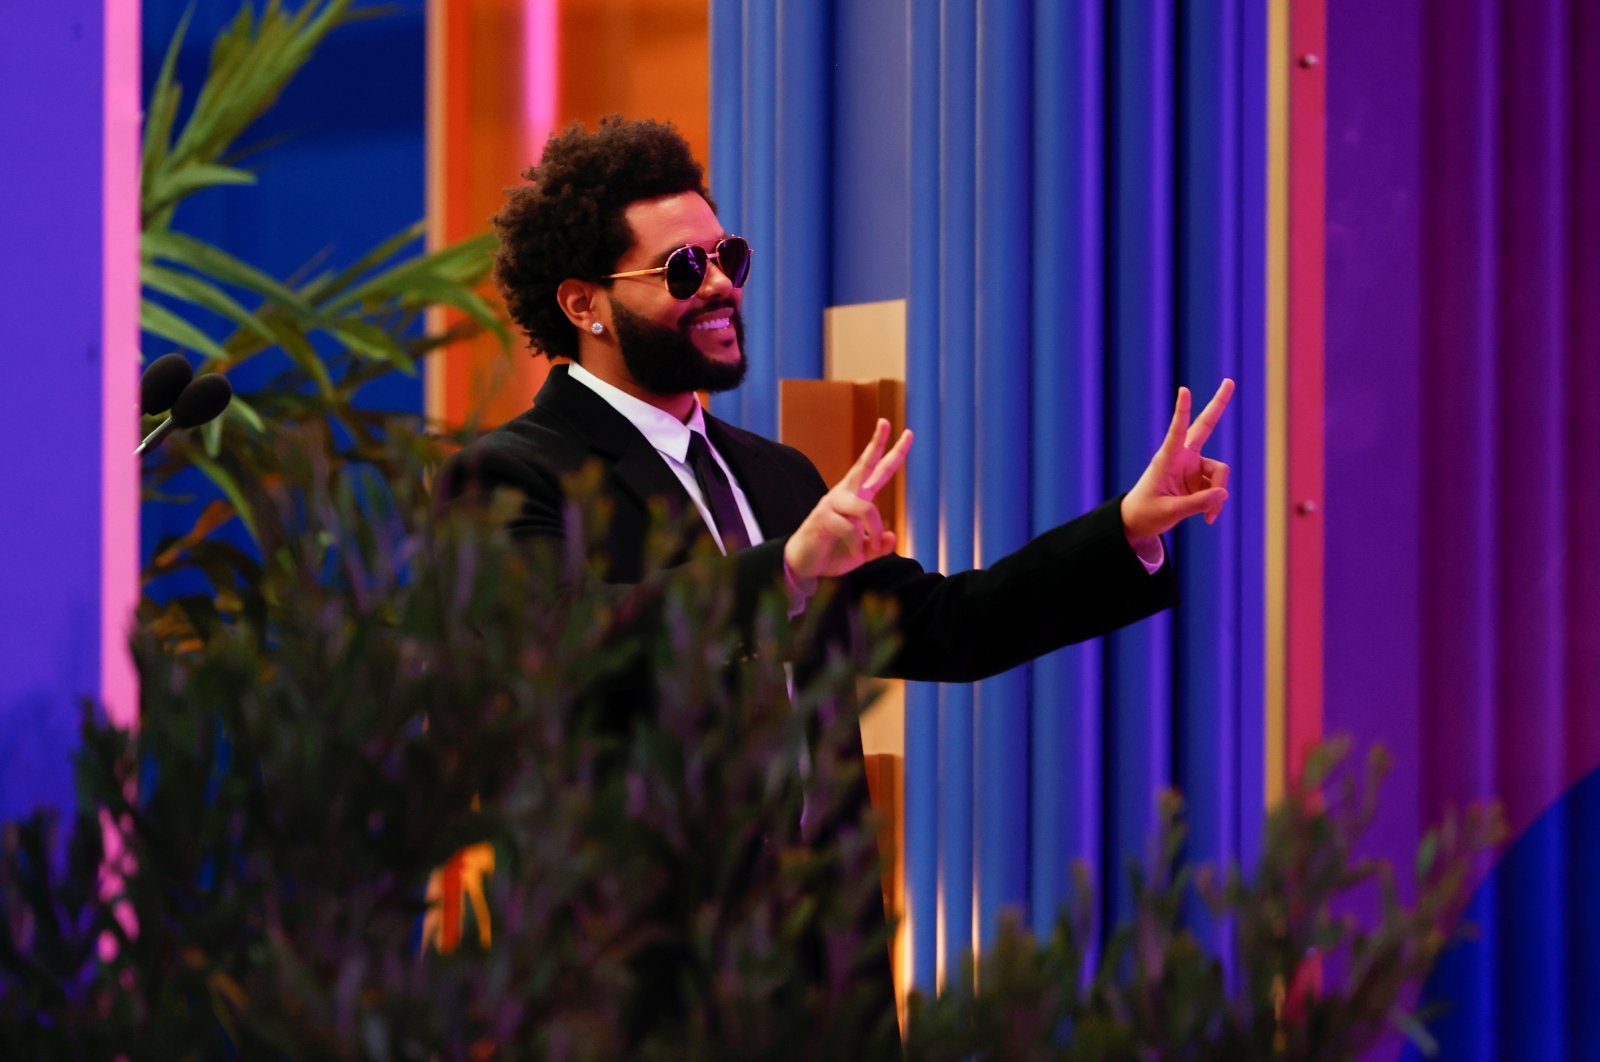 The Weeknd gestures as he accepts the award for Top Artist at the 2021 Billboard Music Awards outside the Microsoft Theater in Los Angeles, California, U.S. May 23, 2021. (REUTERS Photo)